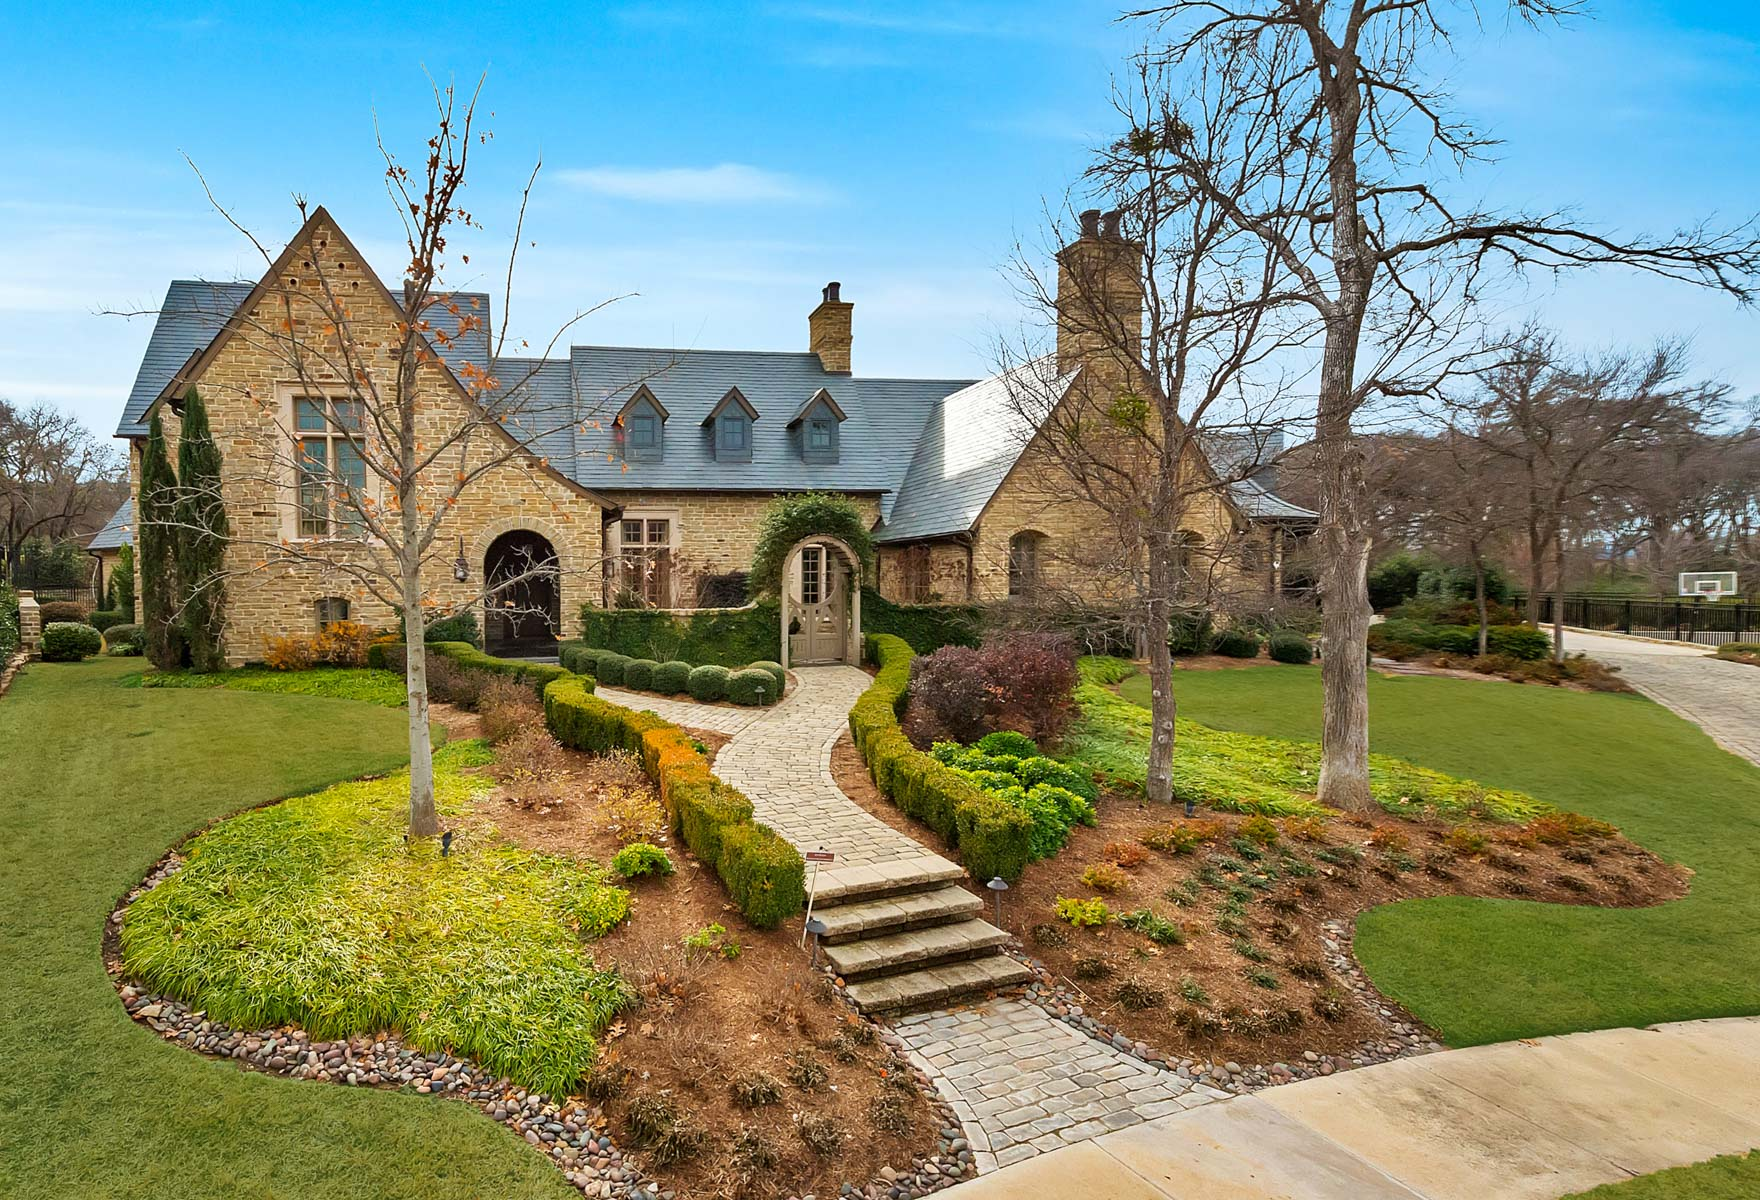 단독 가정 주택 용 매매 에 Stunning Two-Story English Cotswold Manor 3640 Middlewood Drive Fort Worth, 텍사스, 76109 미국